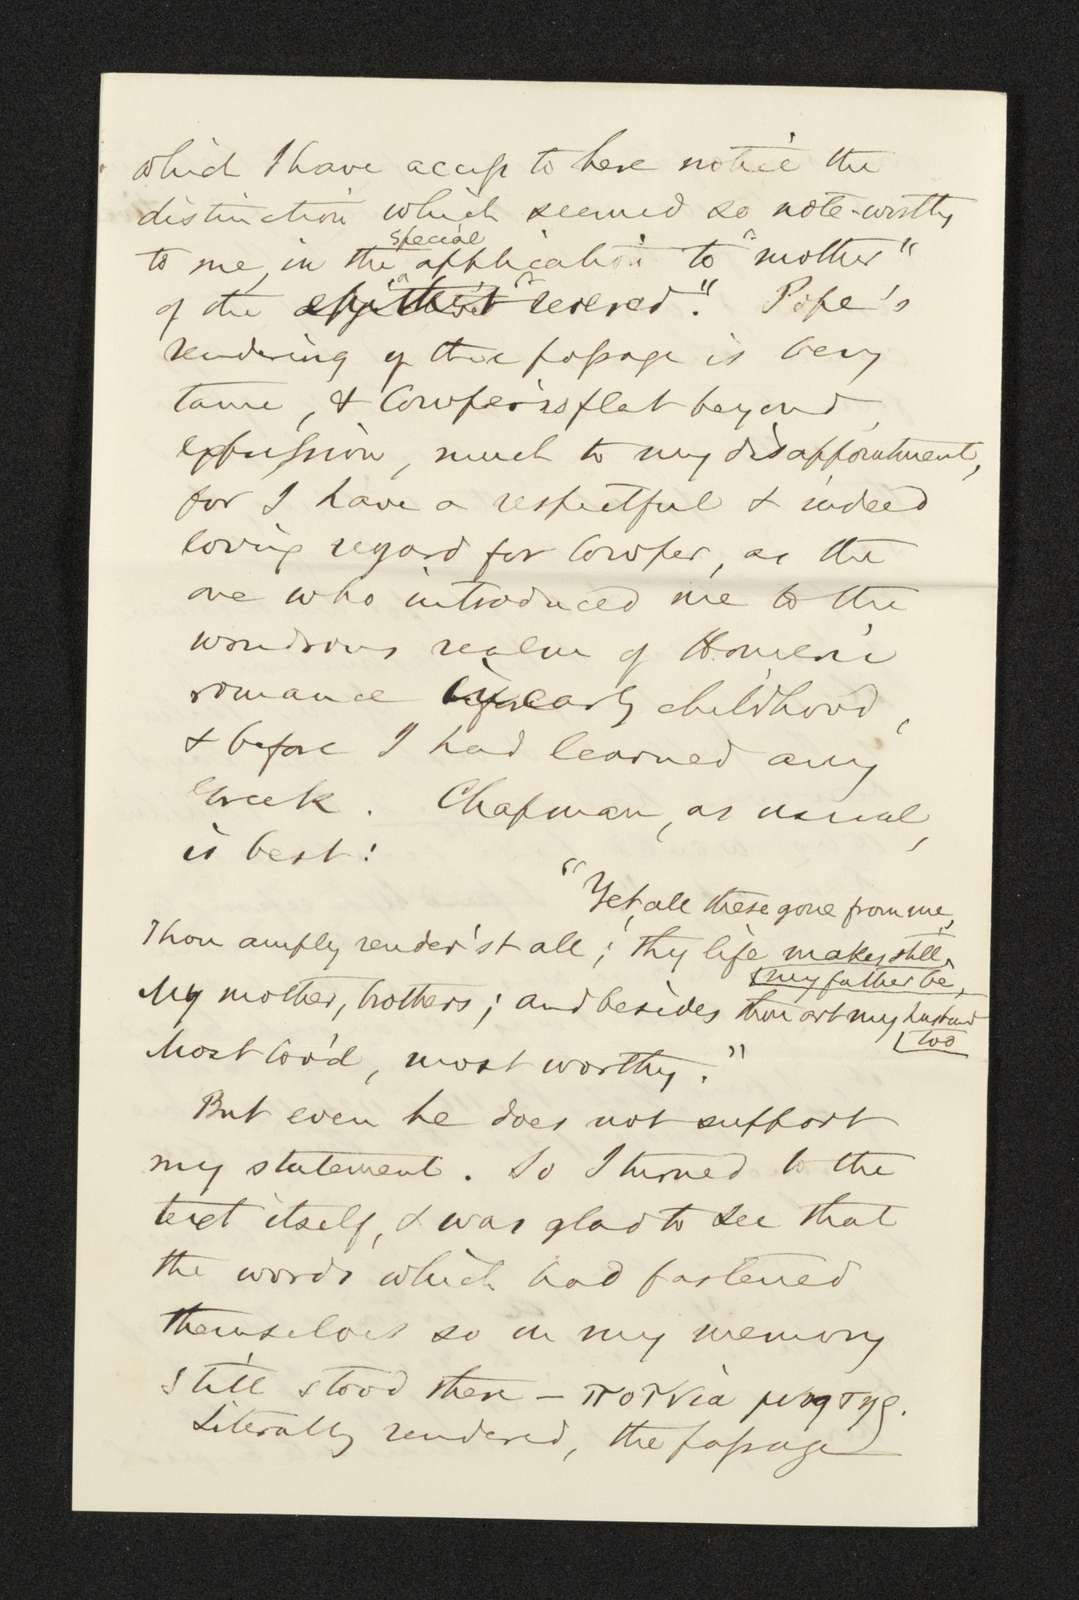 Lewis H. Machen Family Papers: Machen-Gresham Correspondence, 1871-1889; Machen, Arthur W., to Gresham, Minnie; 1872, Aug.-1873, Jan.